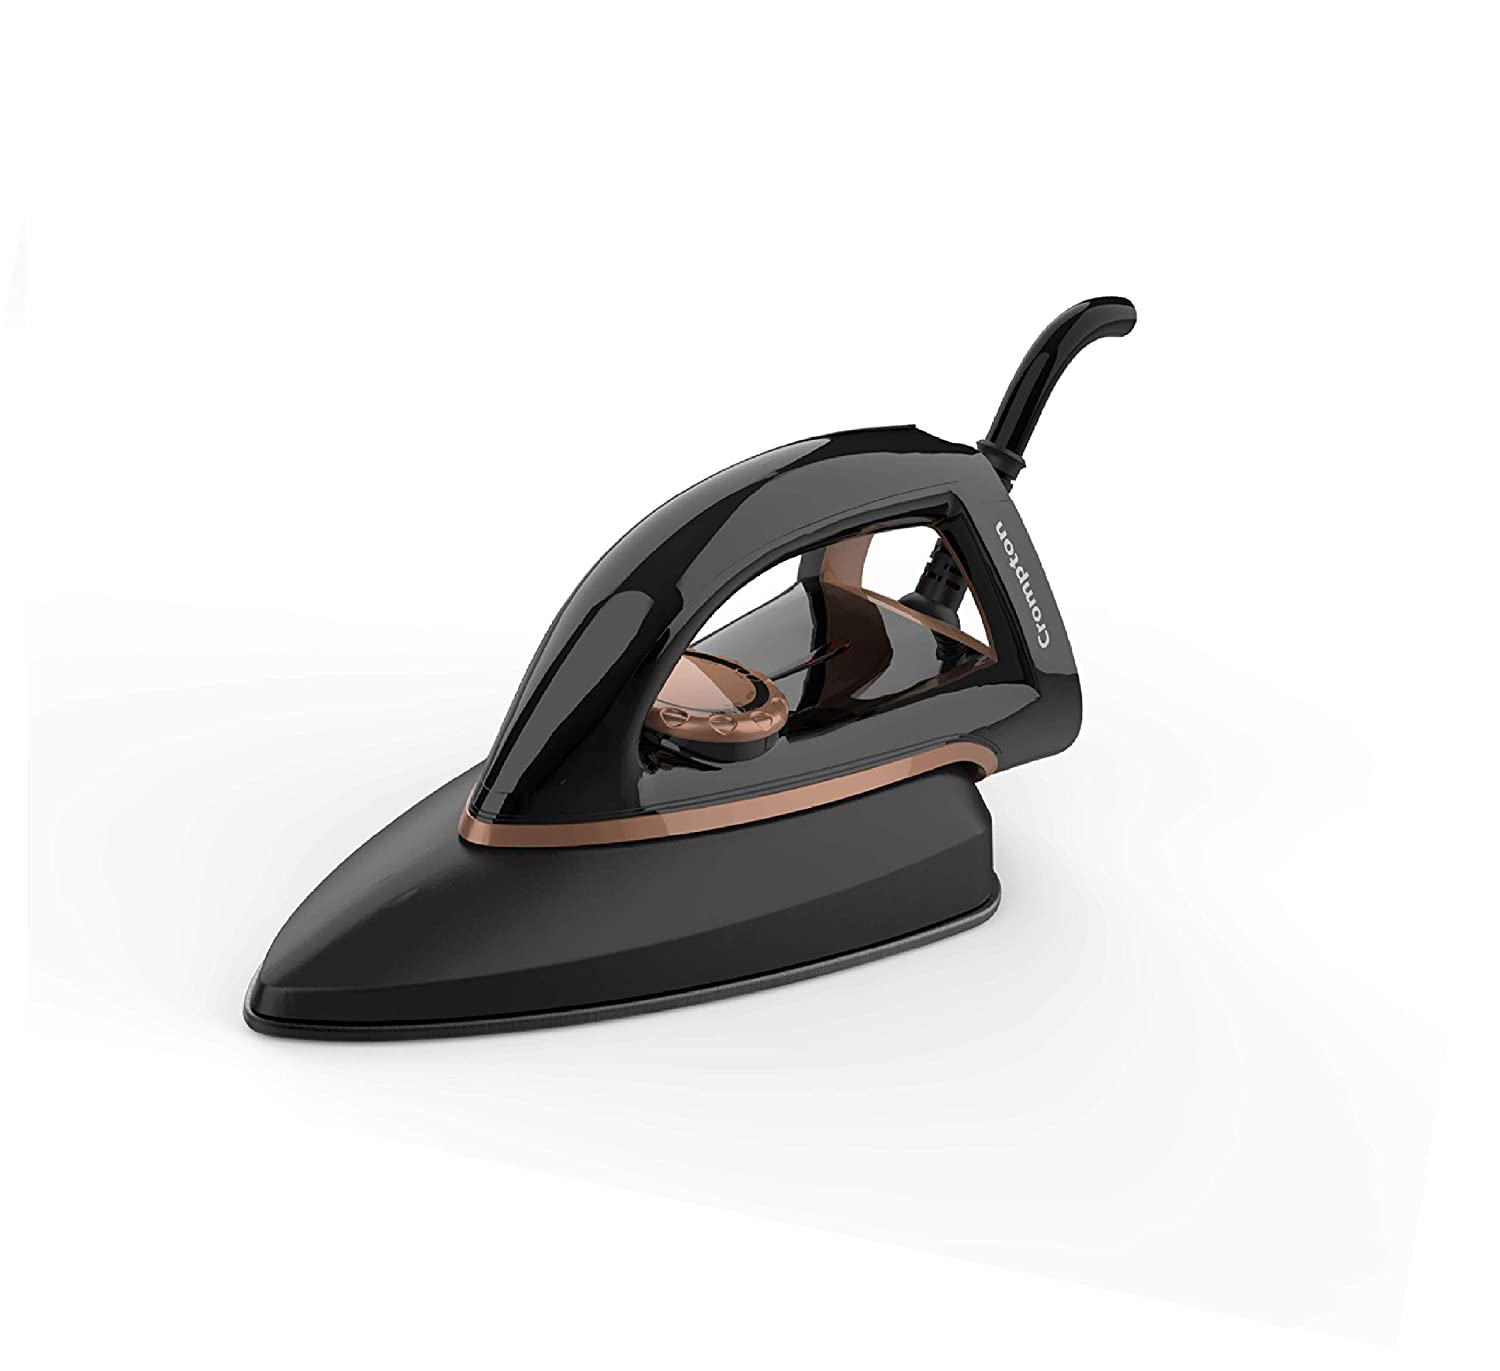 10 Best Iron For Clothes In India 2021